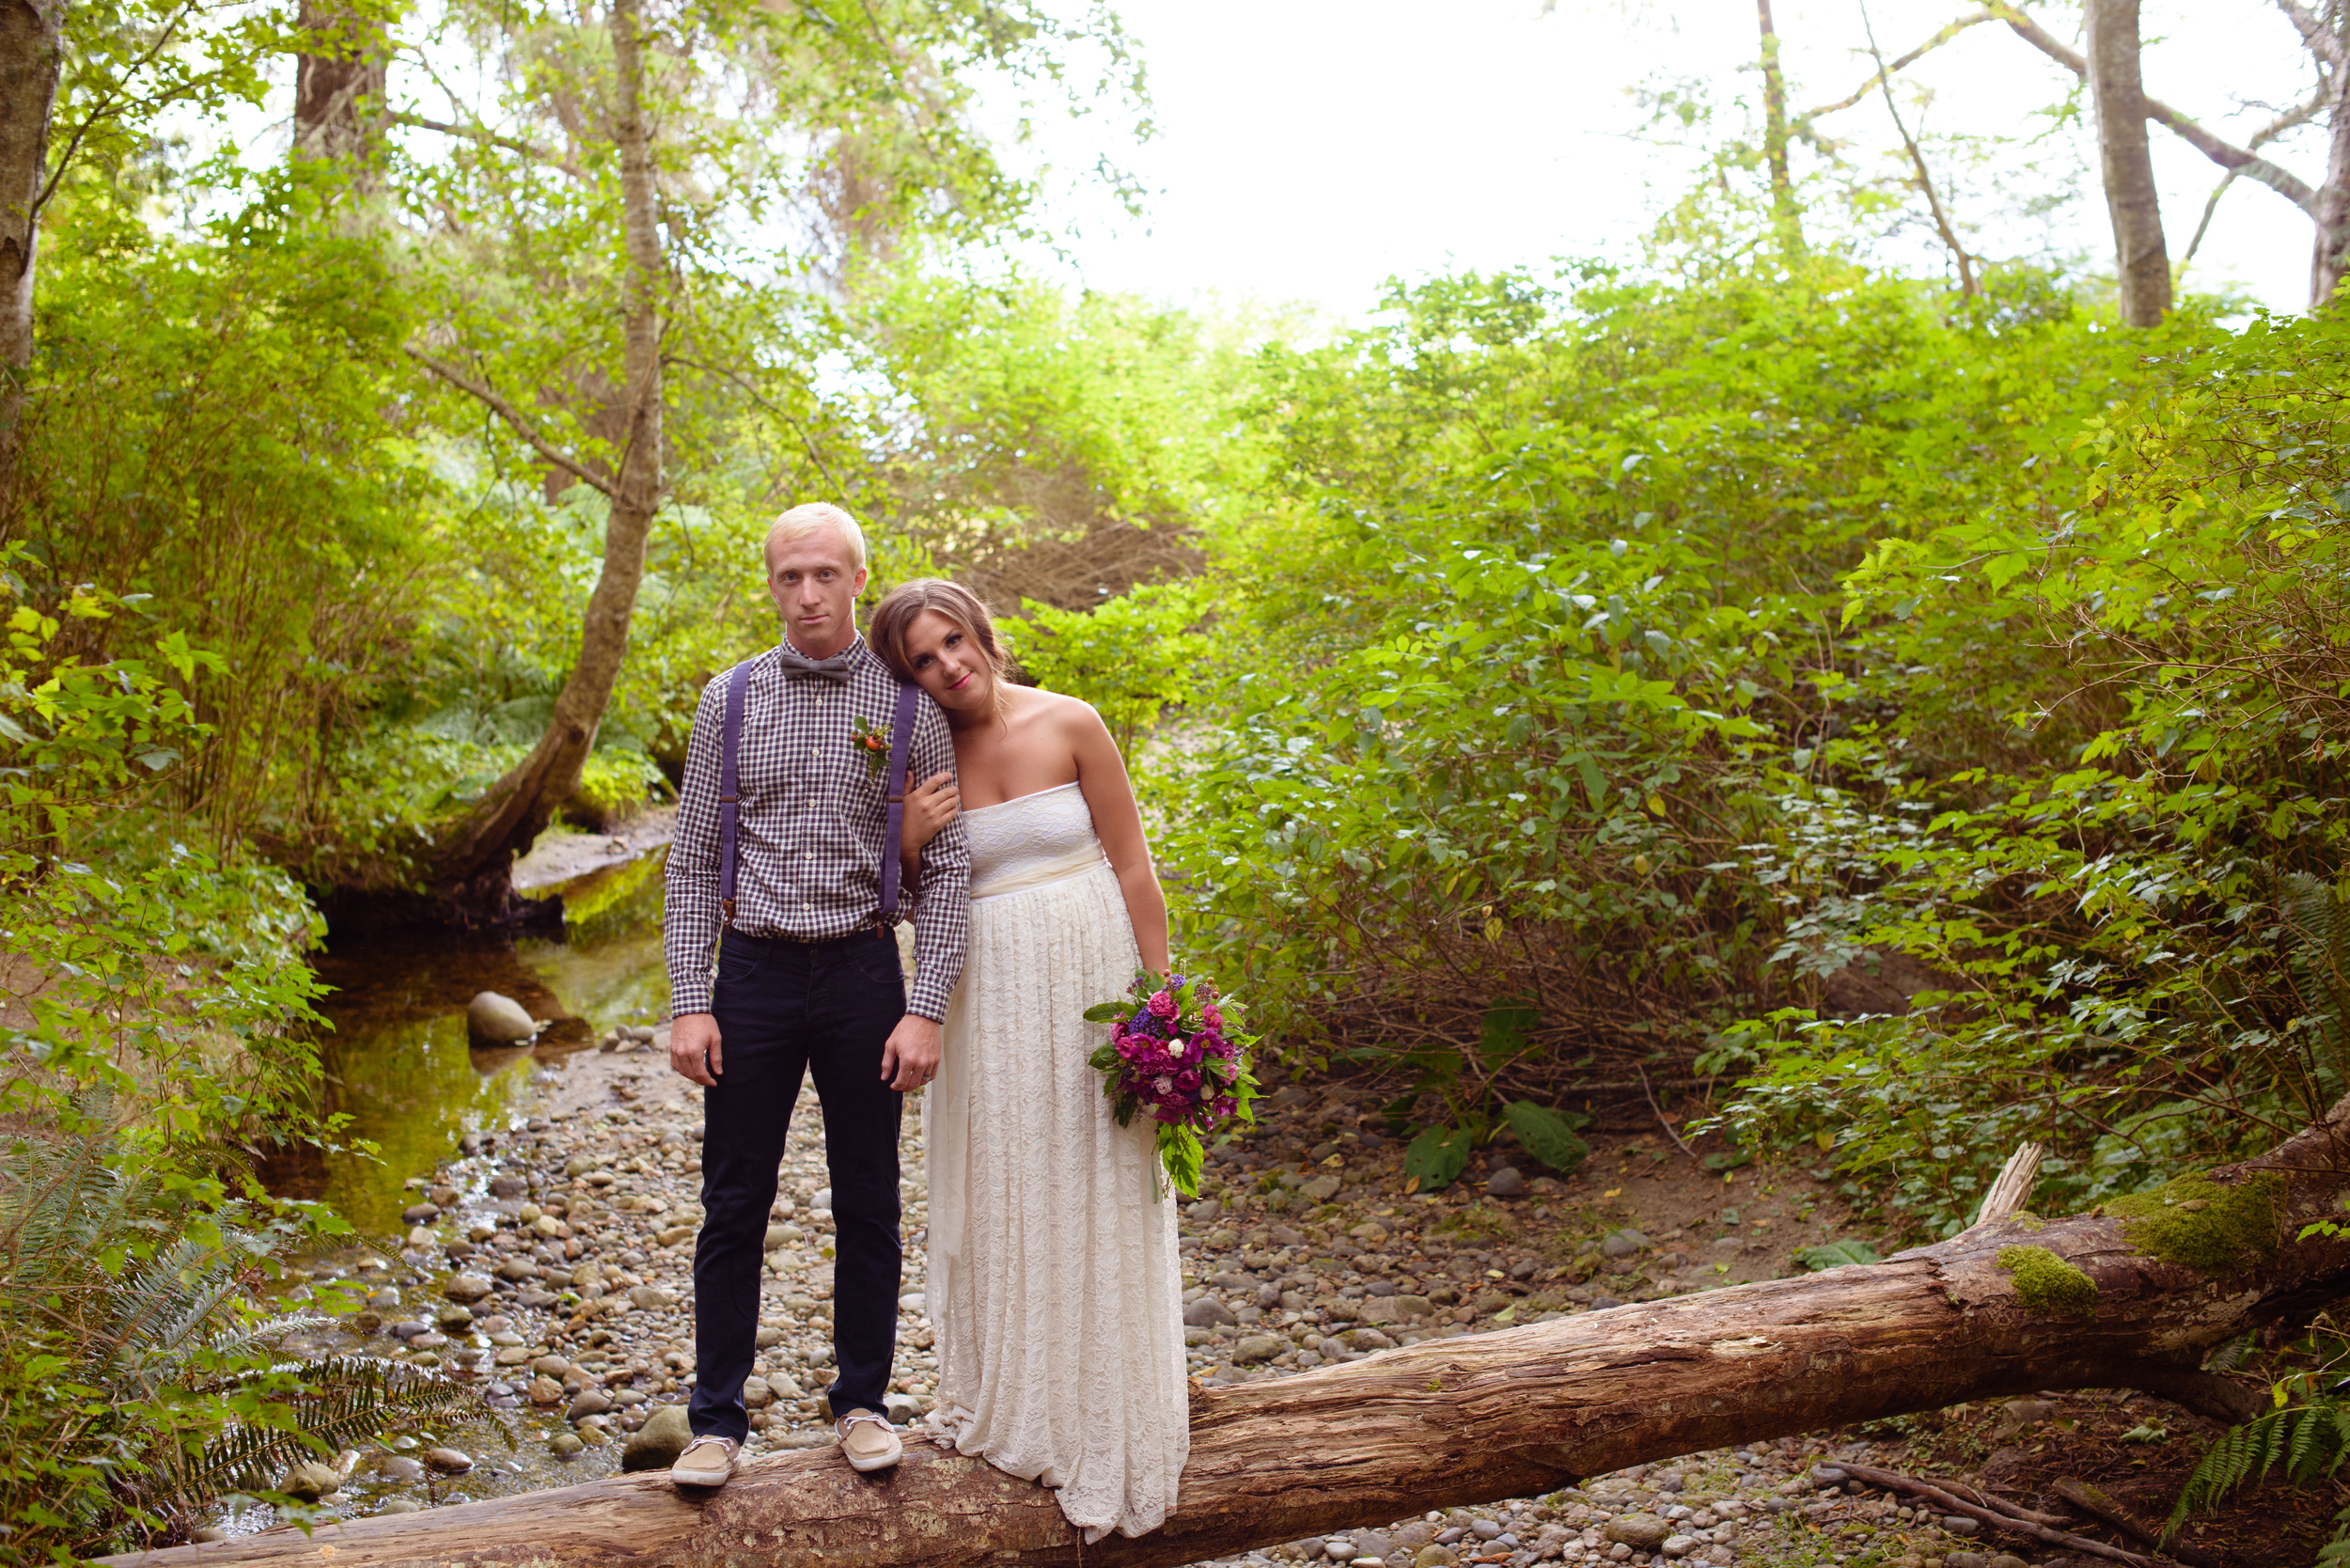 #wedding #woodland #couple #love www.sashataylorweddings.com